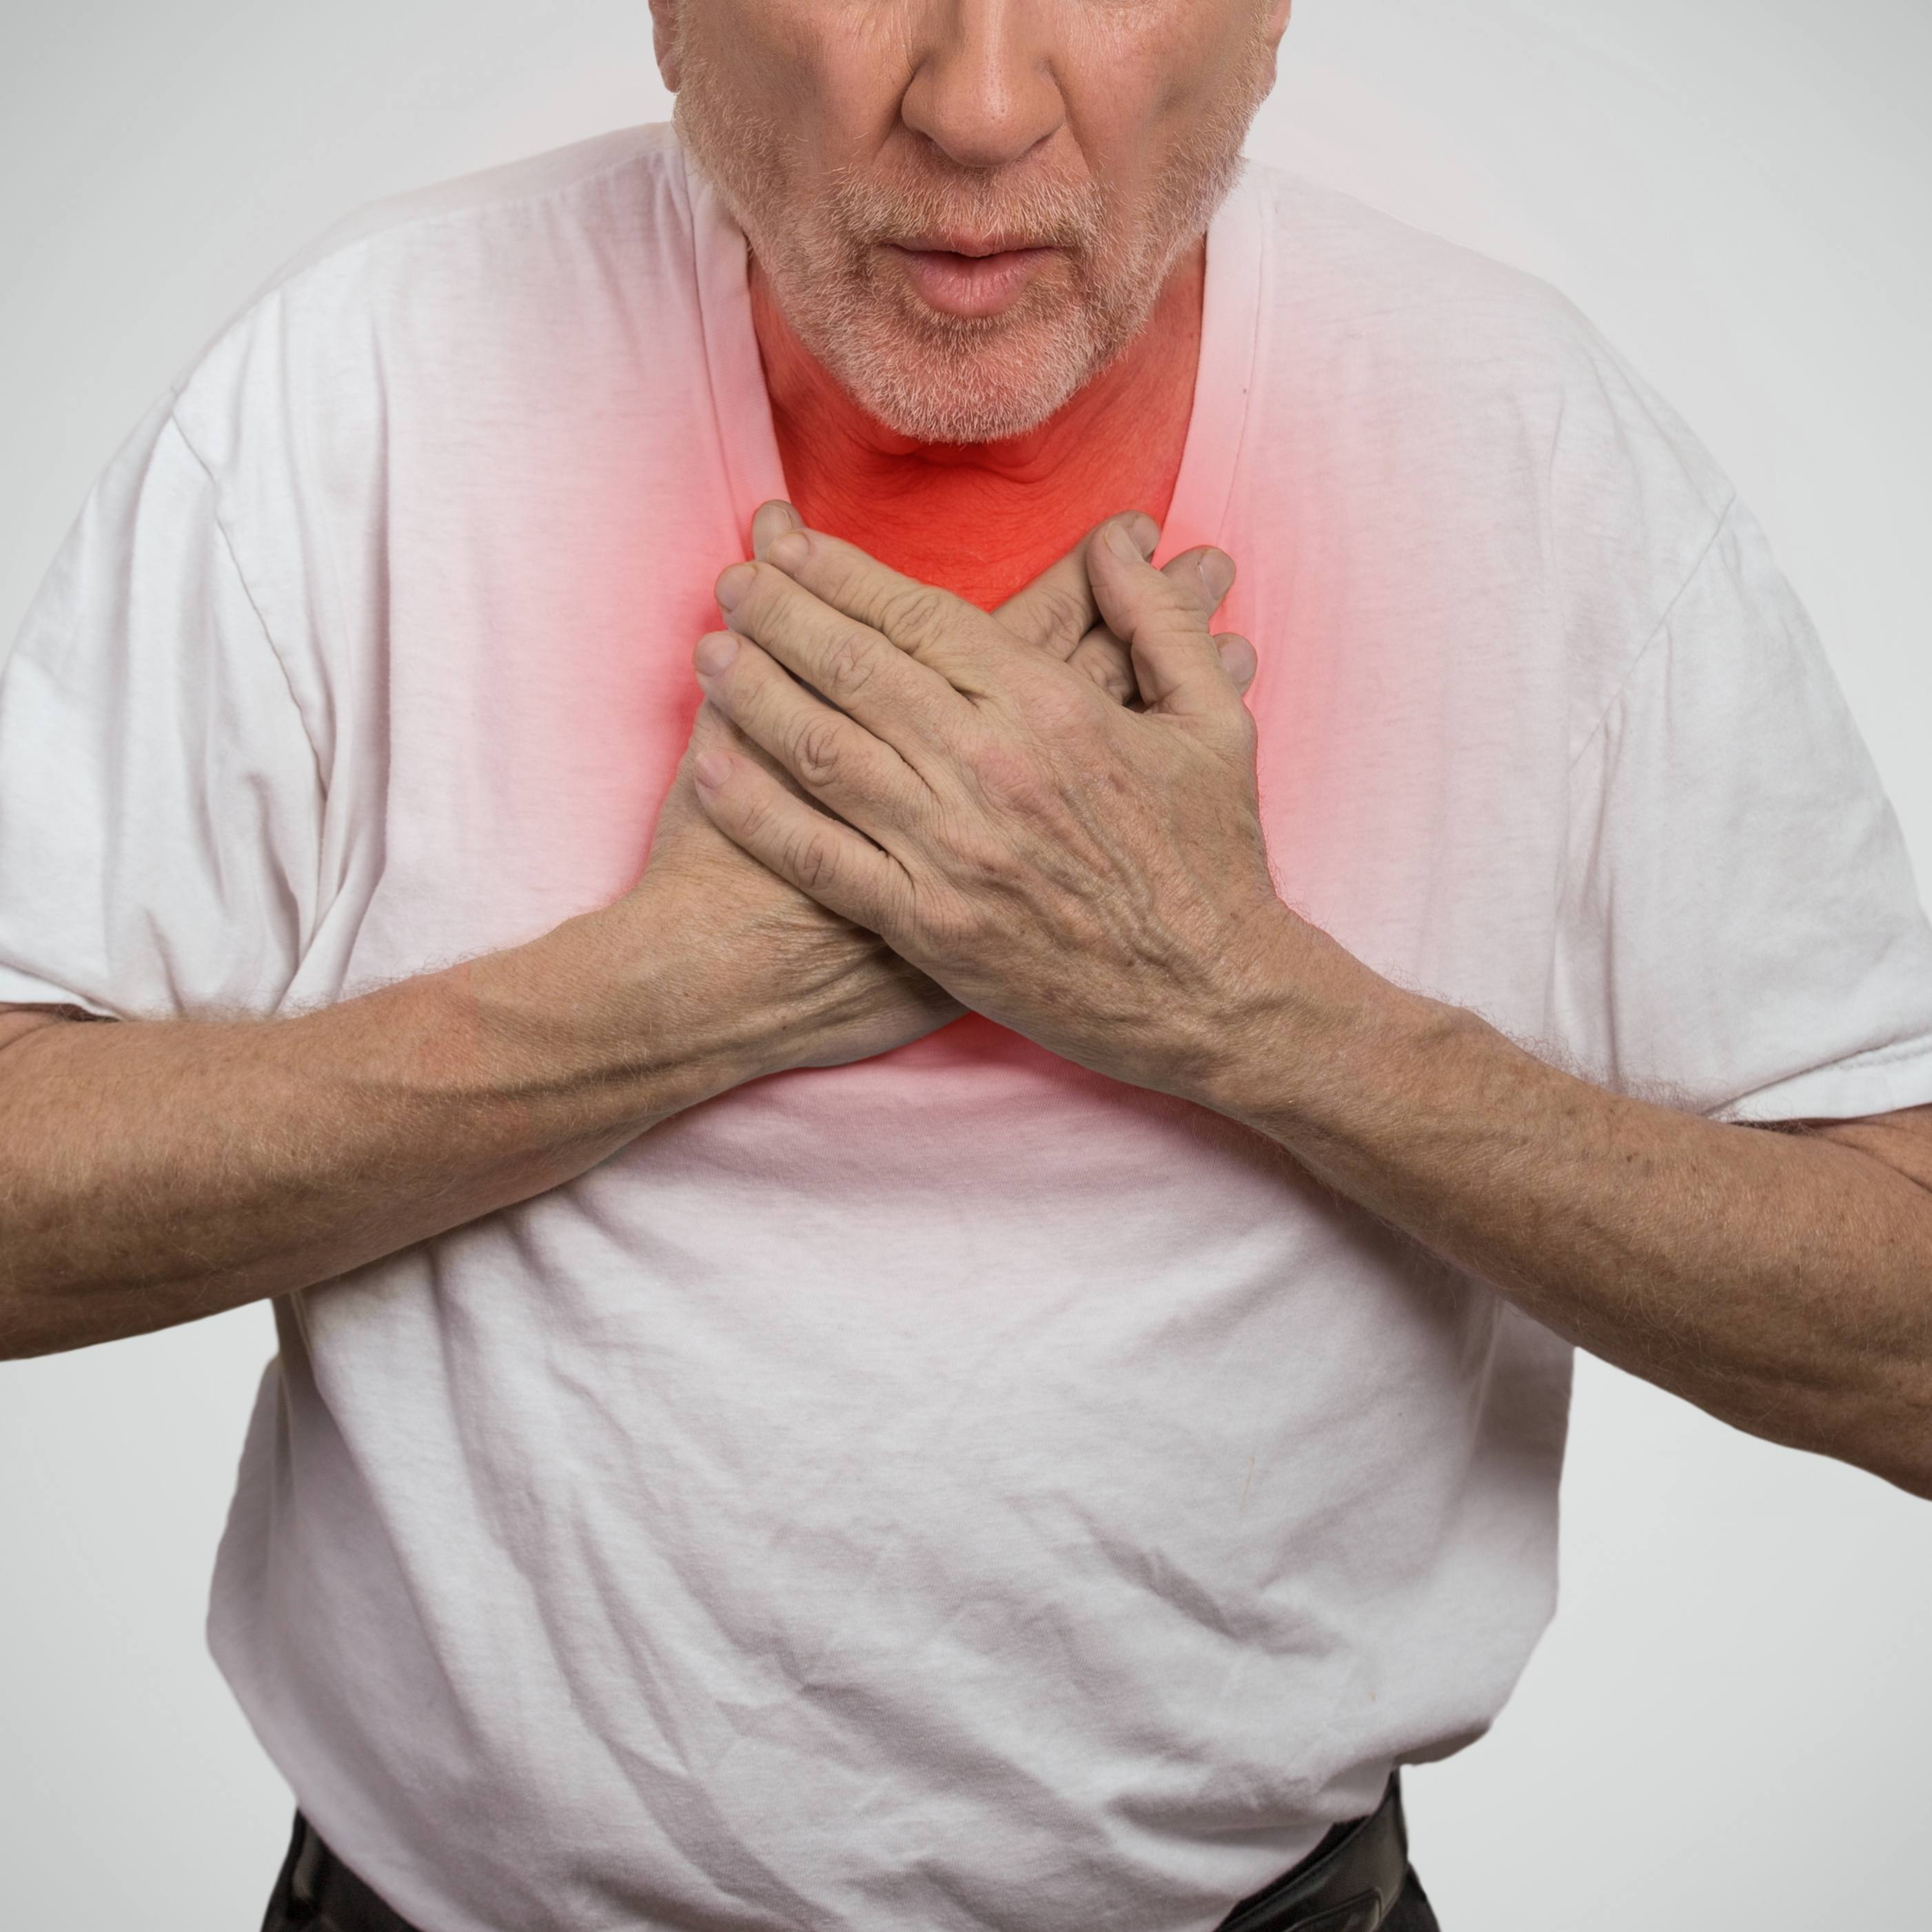 Elderly man having chest pain, trying to catch his breath